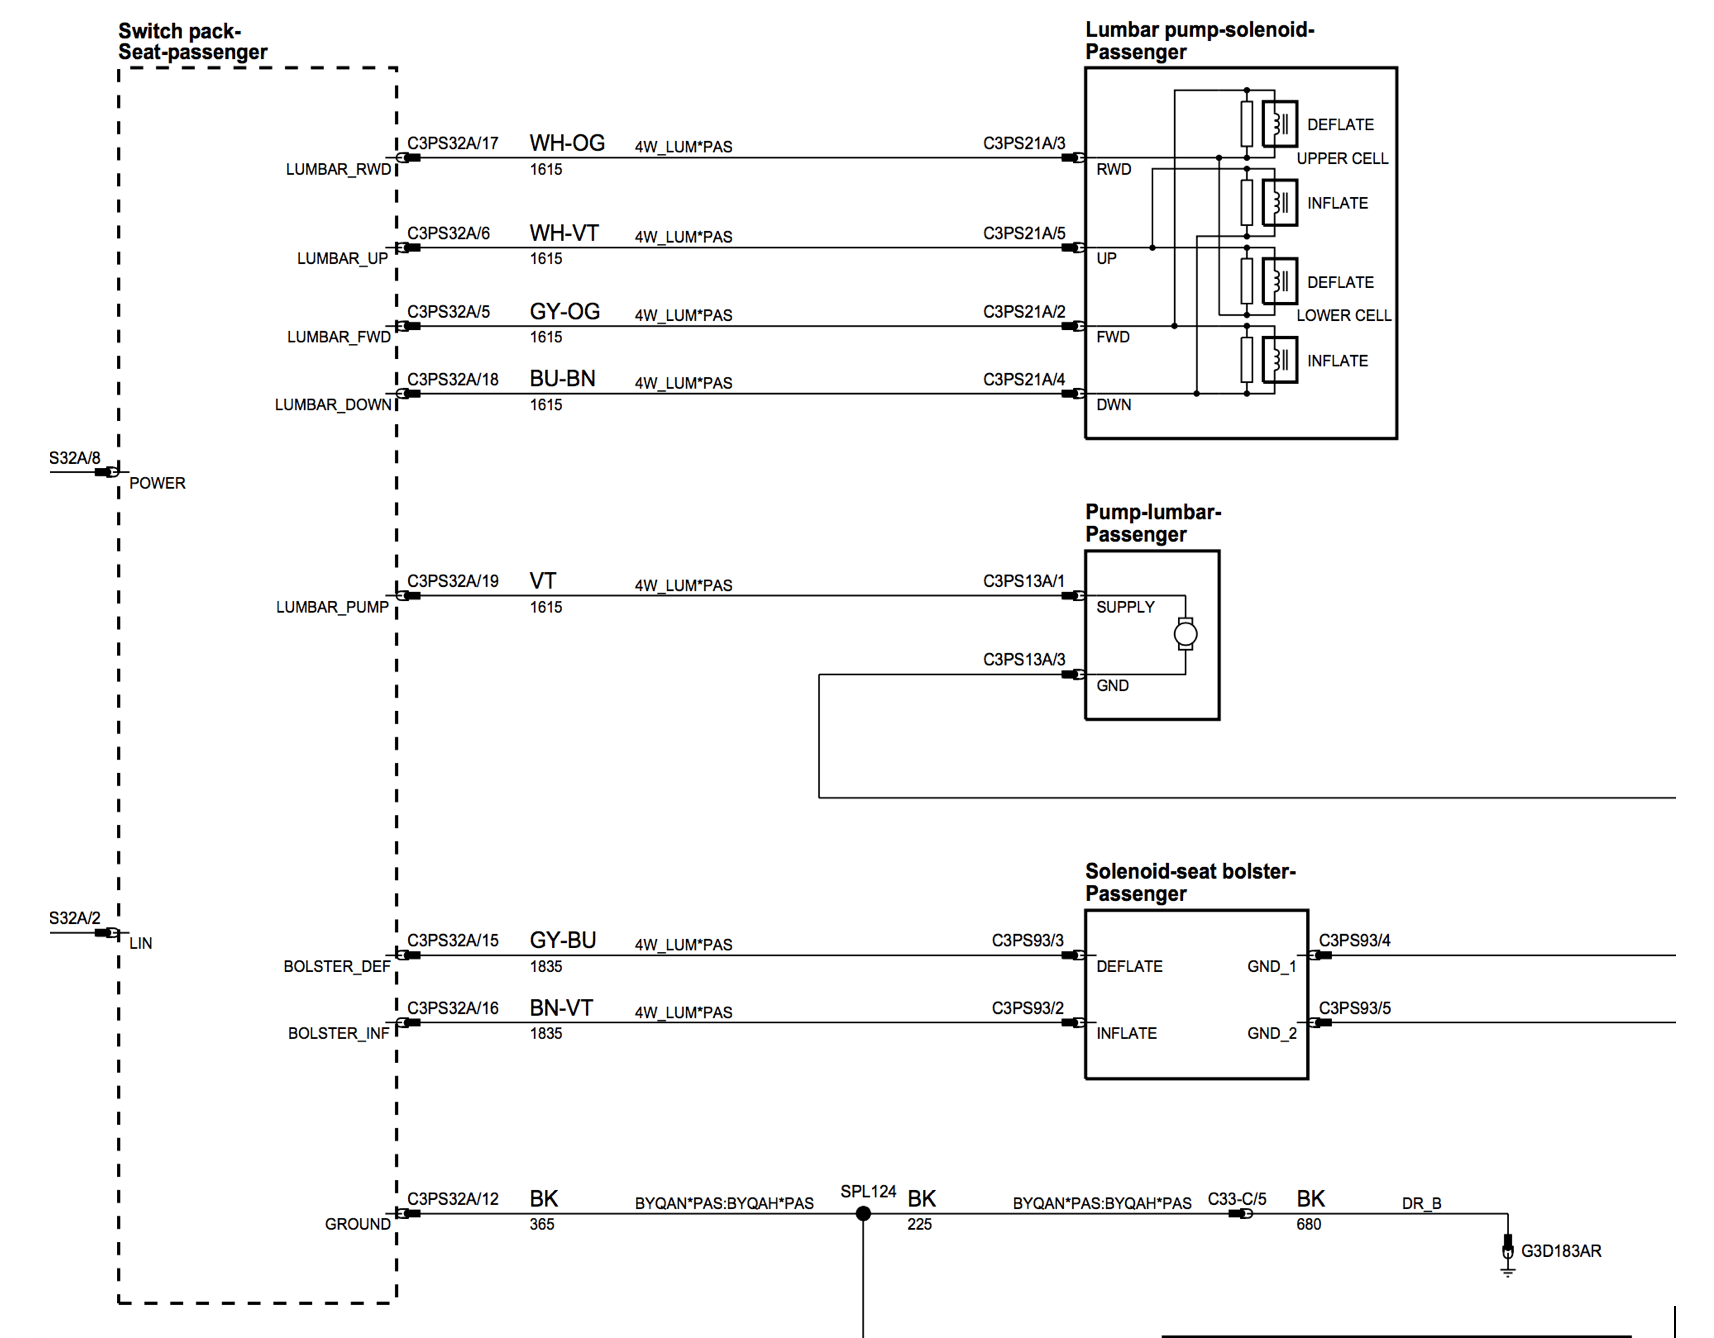 hight resolution of i tested wiring wh vt and wh og to the 3pdt switch and nothing happens when i touch the terminals off and on i hear a silent click but that is it